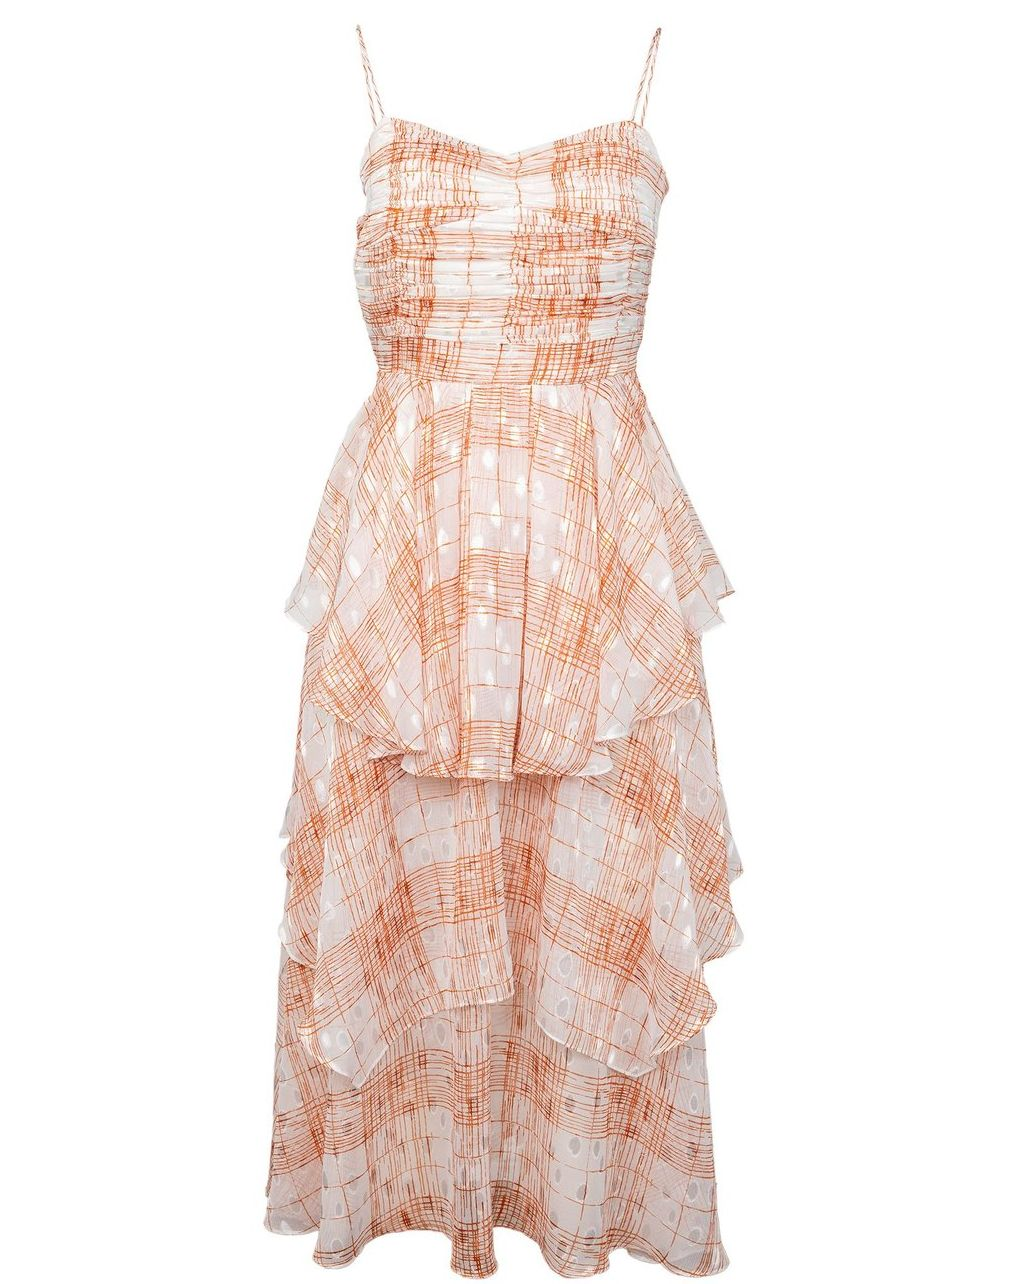 Sleeveless Lux Peach Dress by J.ING women's clothes